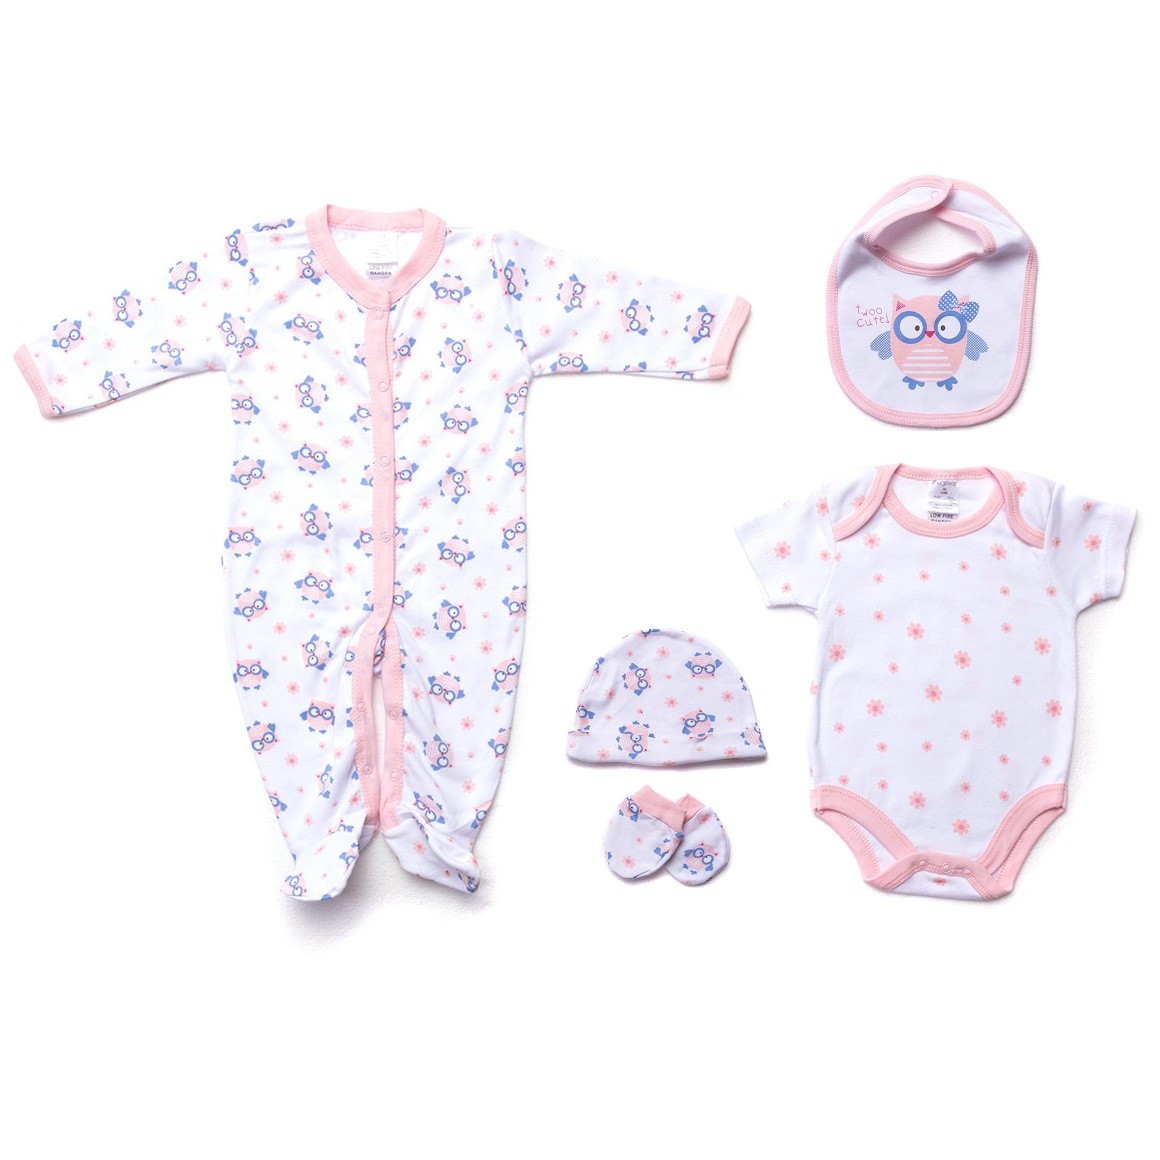 Twoo Cute 5-Piece Value Set